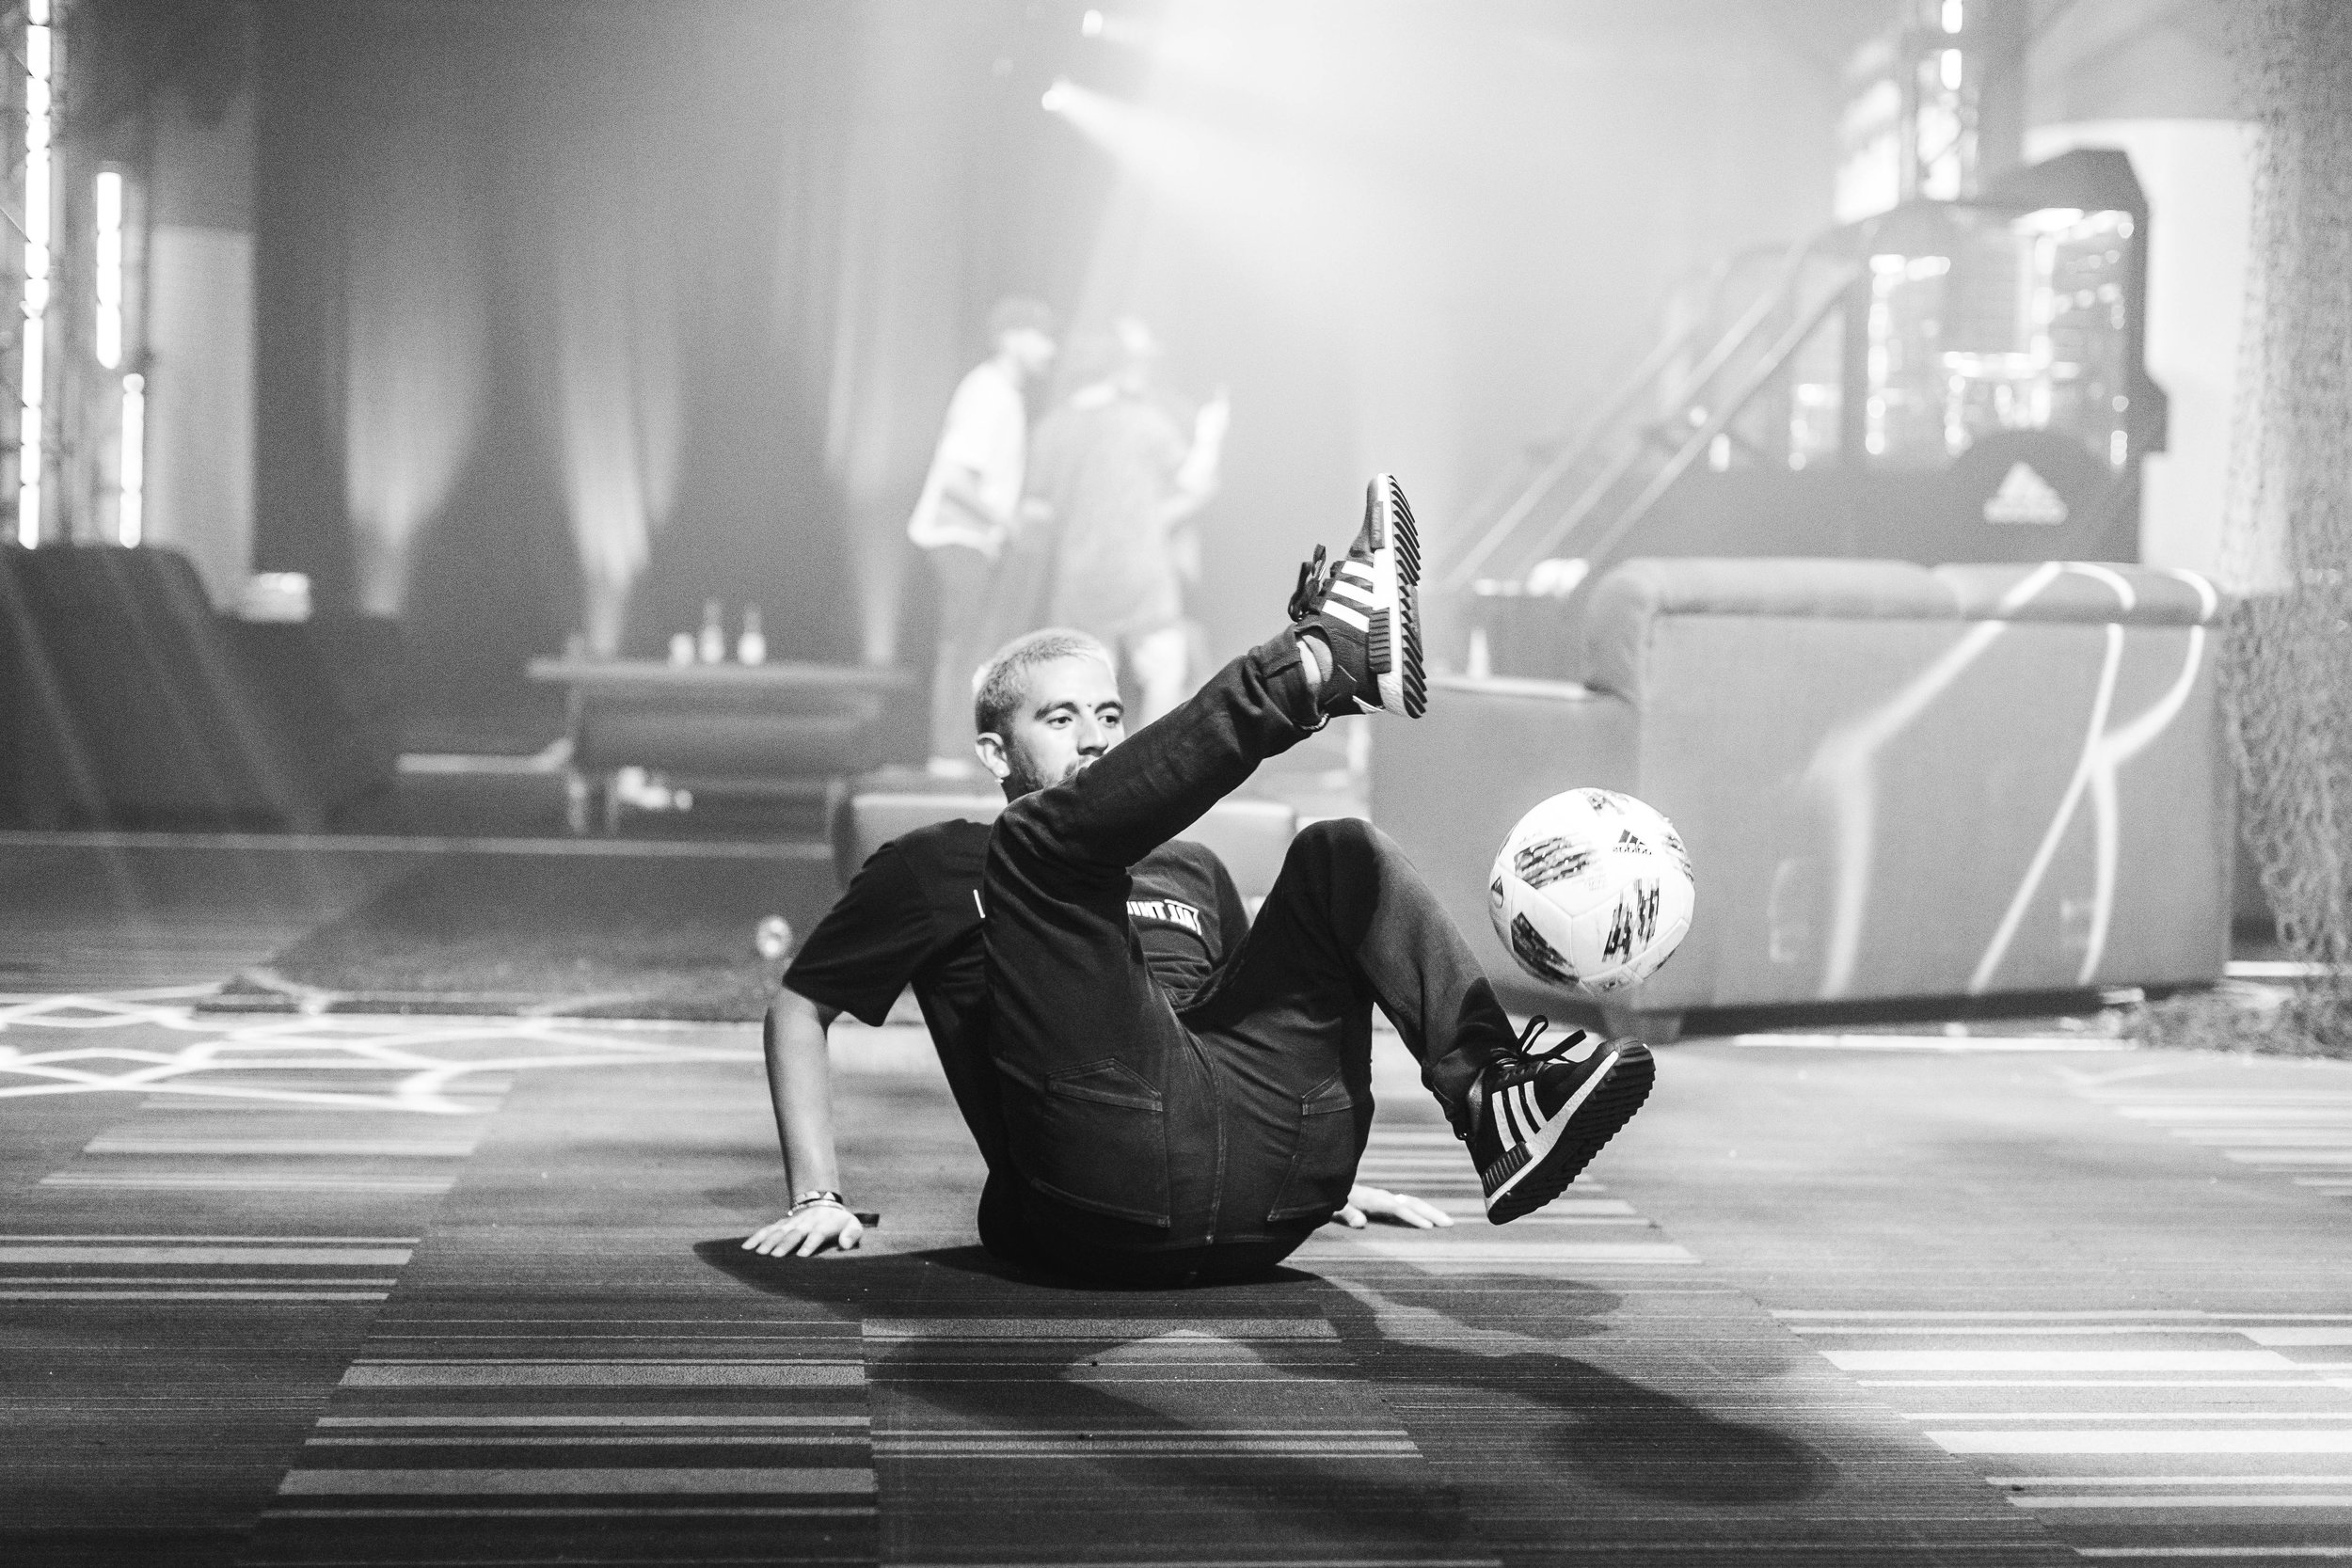 MLS All Star FreeStyle Soccer5B0A1025.jpg